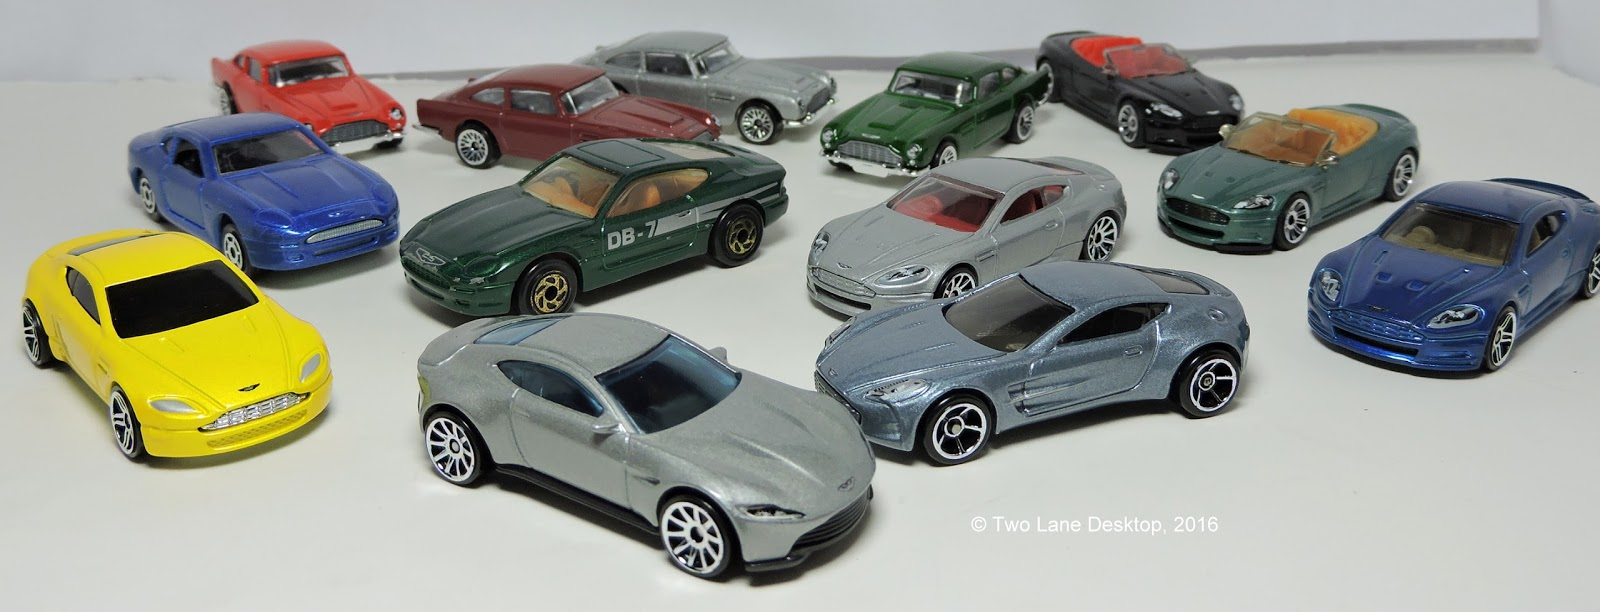 ASUNiAbLJPu6akjUd12ekJQ additionally First Drive in addition 2002 Thunderbird in addition Jaguar F Type Coupe White Startech 5950 together with 007 Aston Martins Hot Wheels Aston. on 2016 aston martin v8 vantage gt review